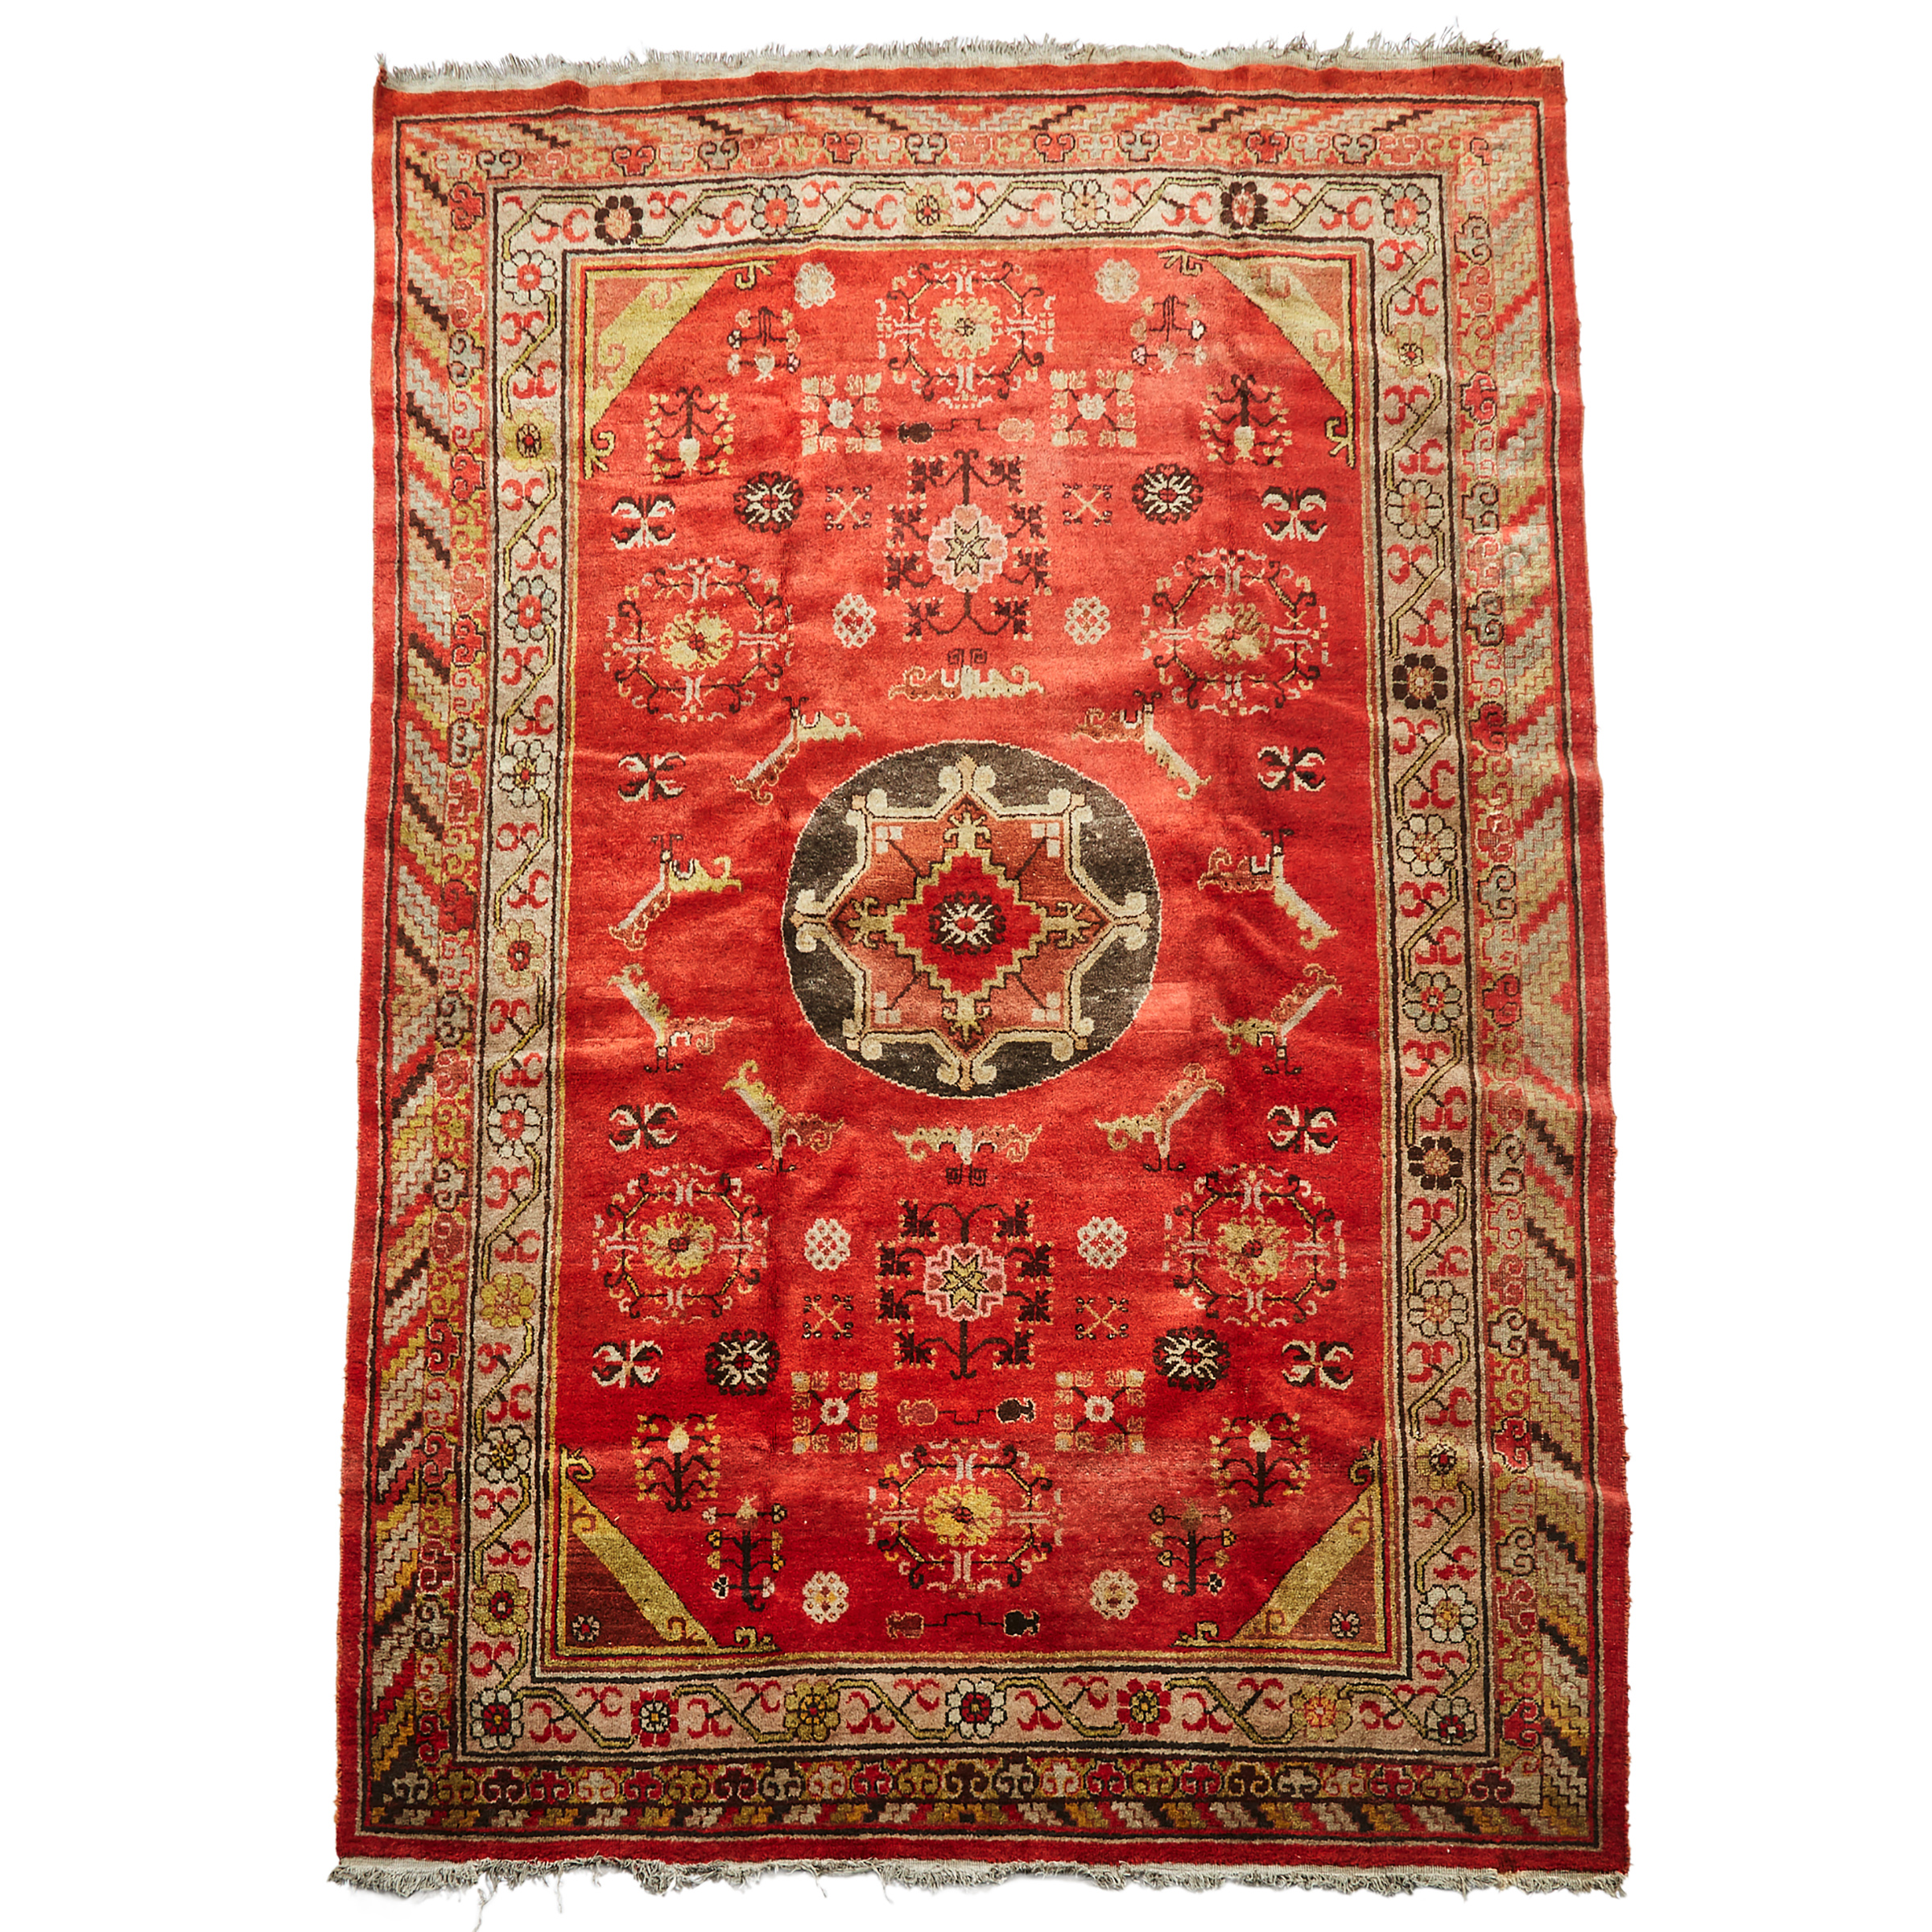 Yarkand Rug, Central Asia, early 20th century